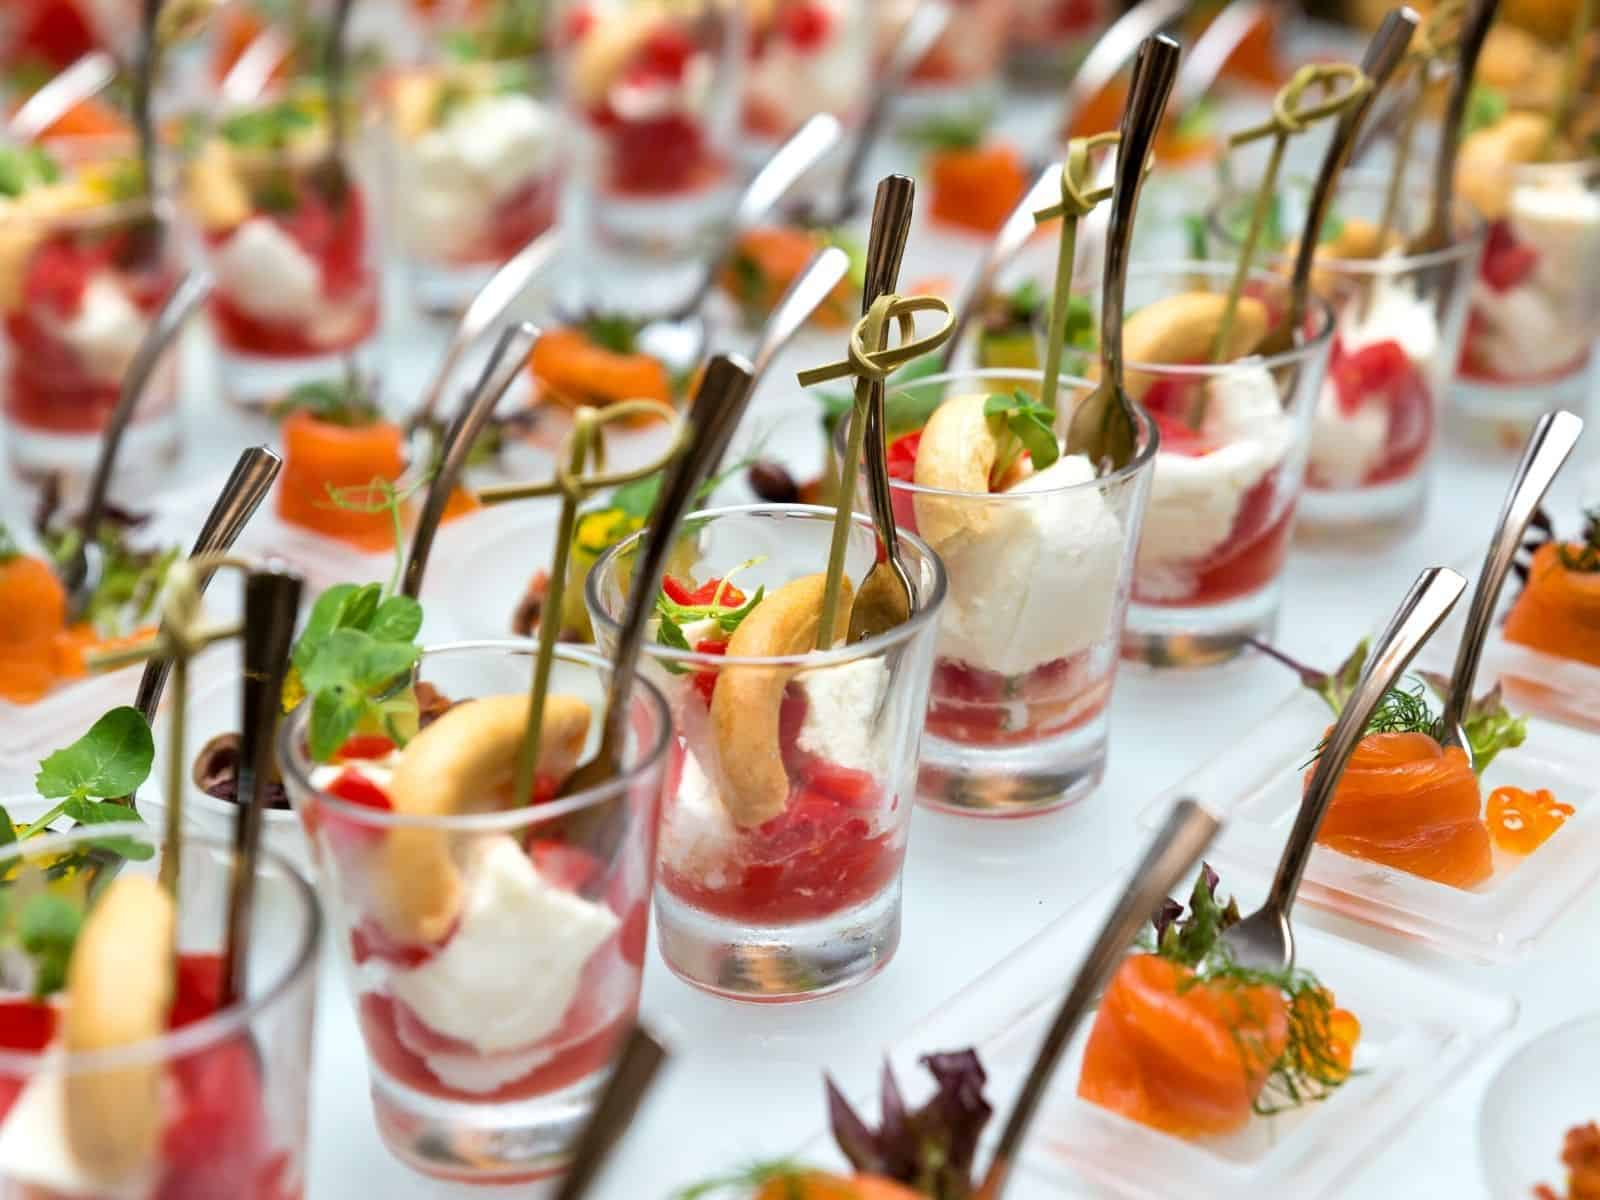 appetizer shooters on plate with mini forks.